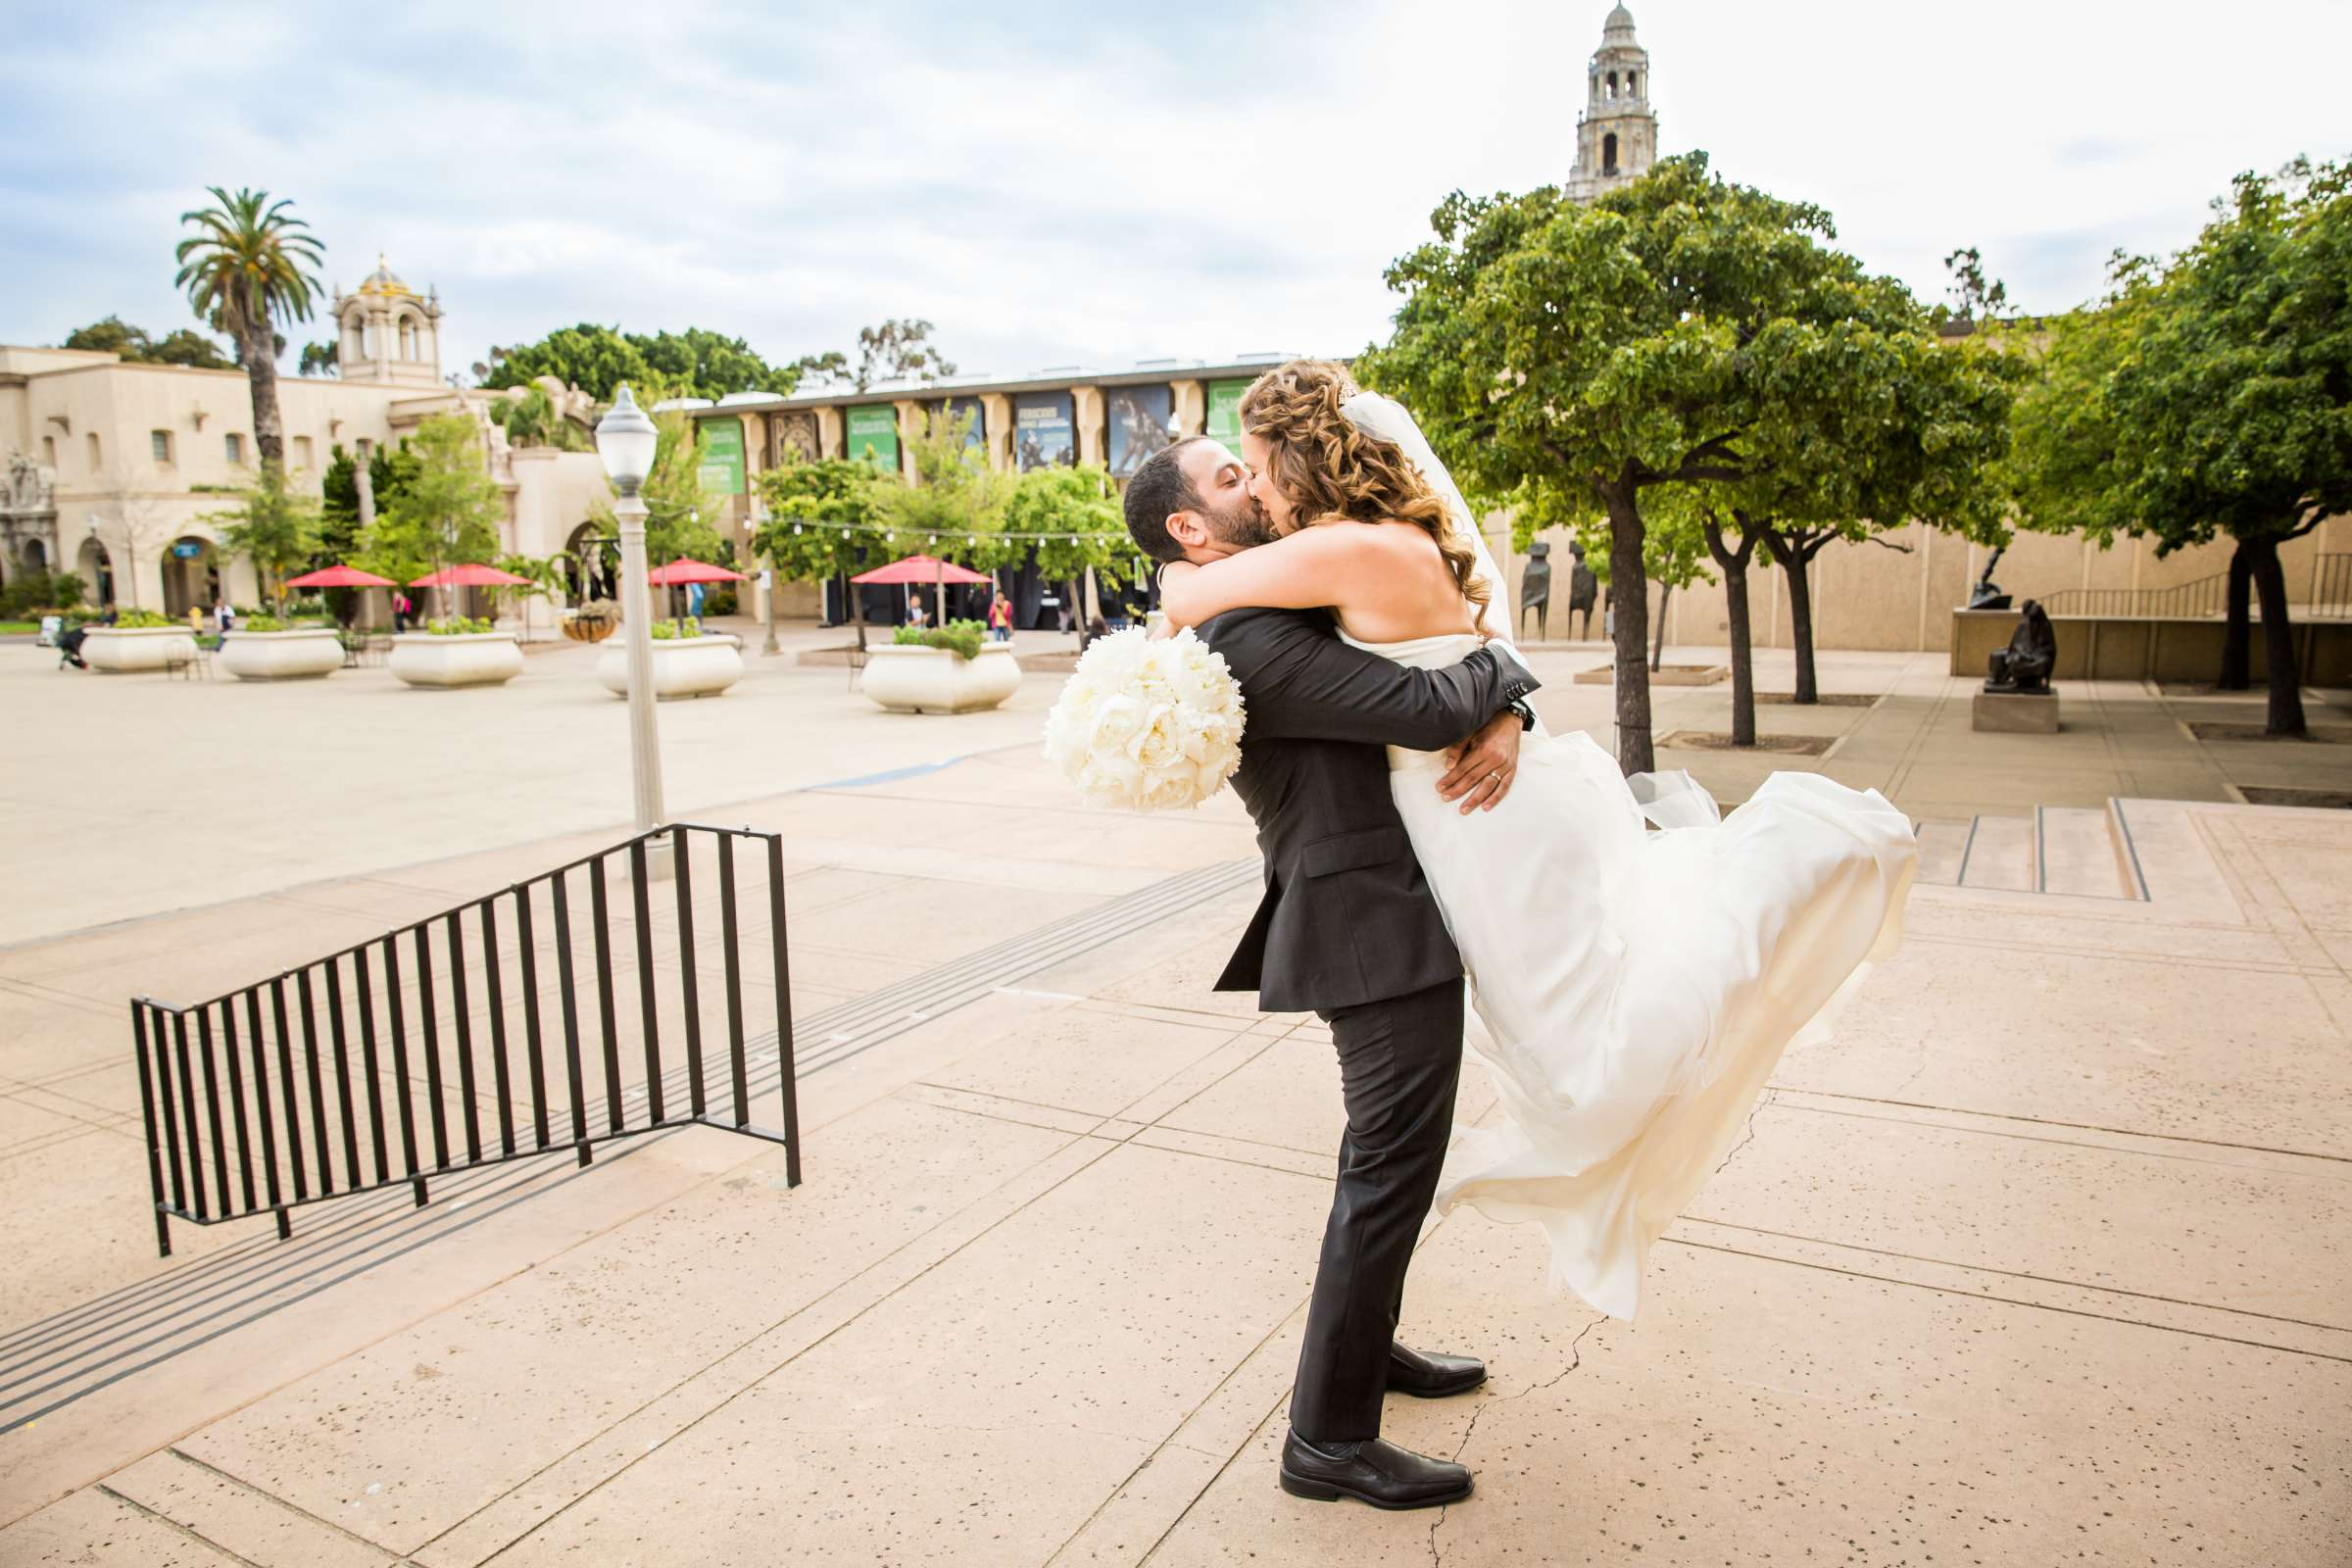 San Diego Museum of Art Wedding coordinated by First Comes Love Weddings & Events, Ruthie and Larry Wedding Photo #236808 by True Photography